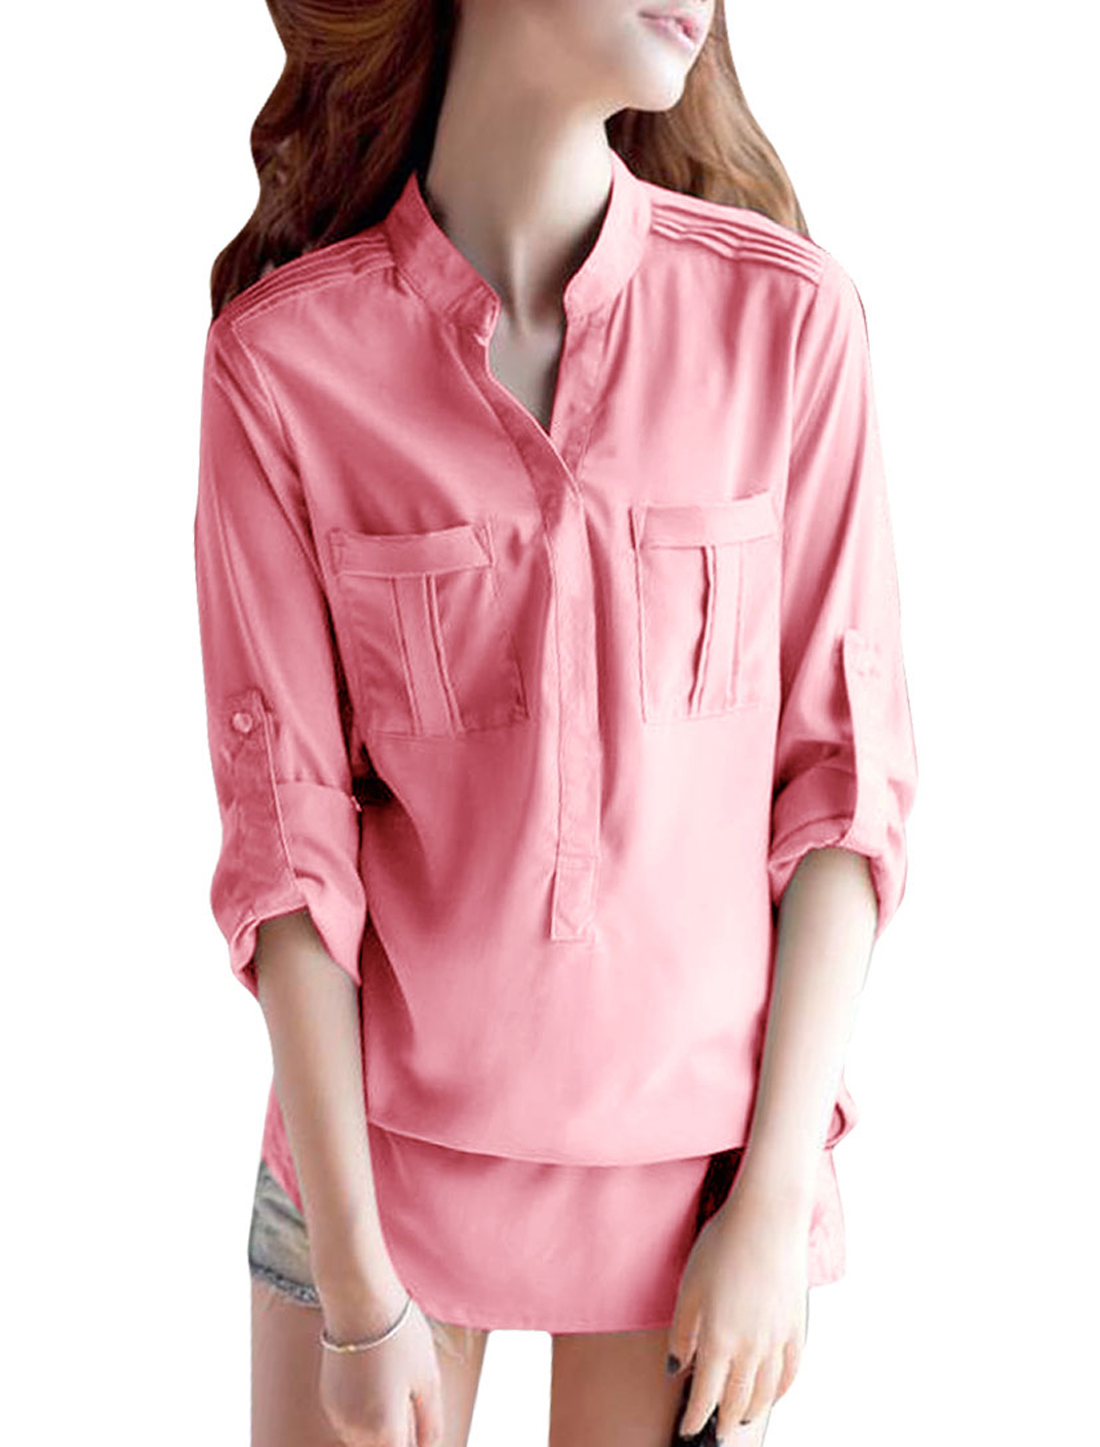 Women Long-sleeved Single Breasted Chiffon Tops Blouses Pink S